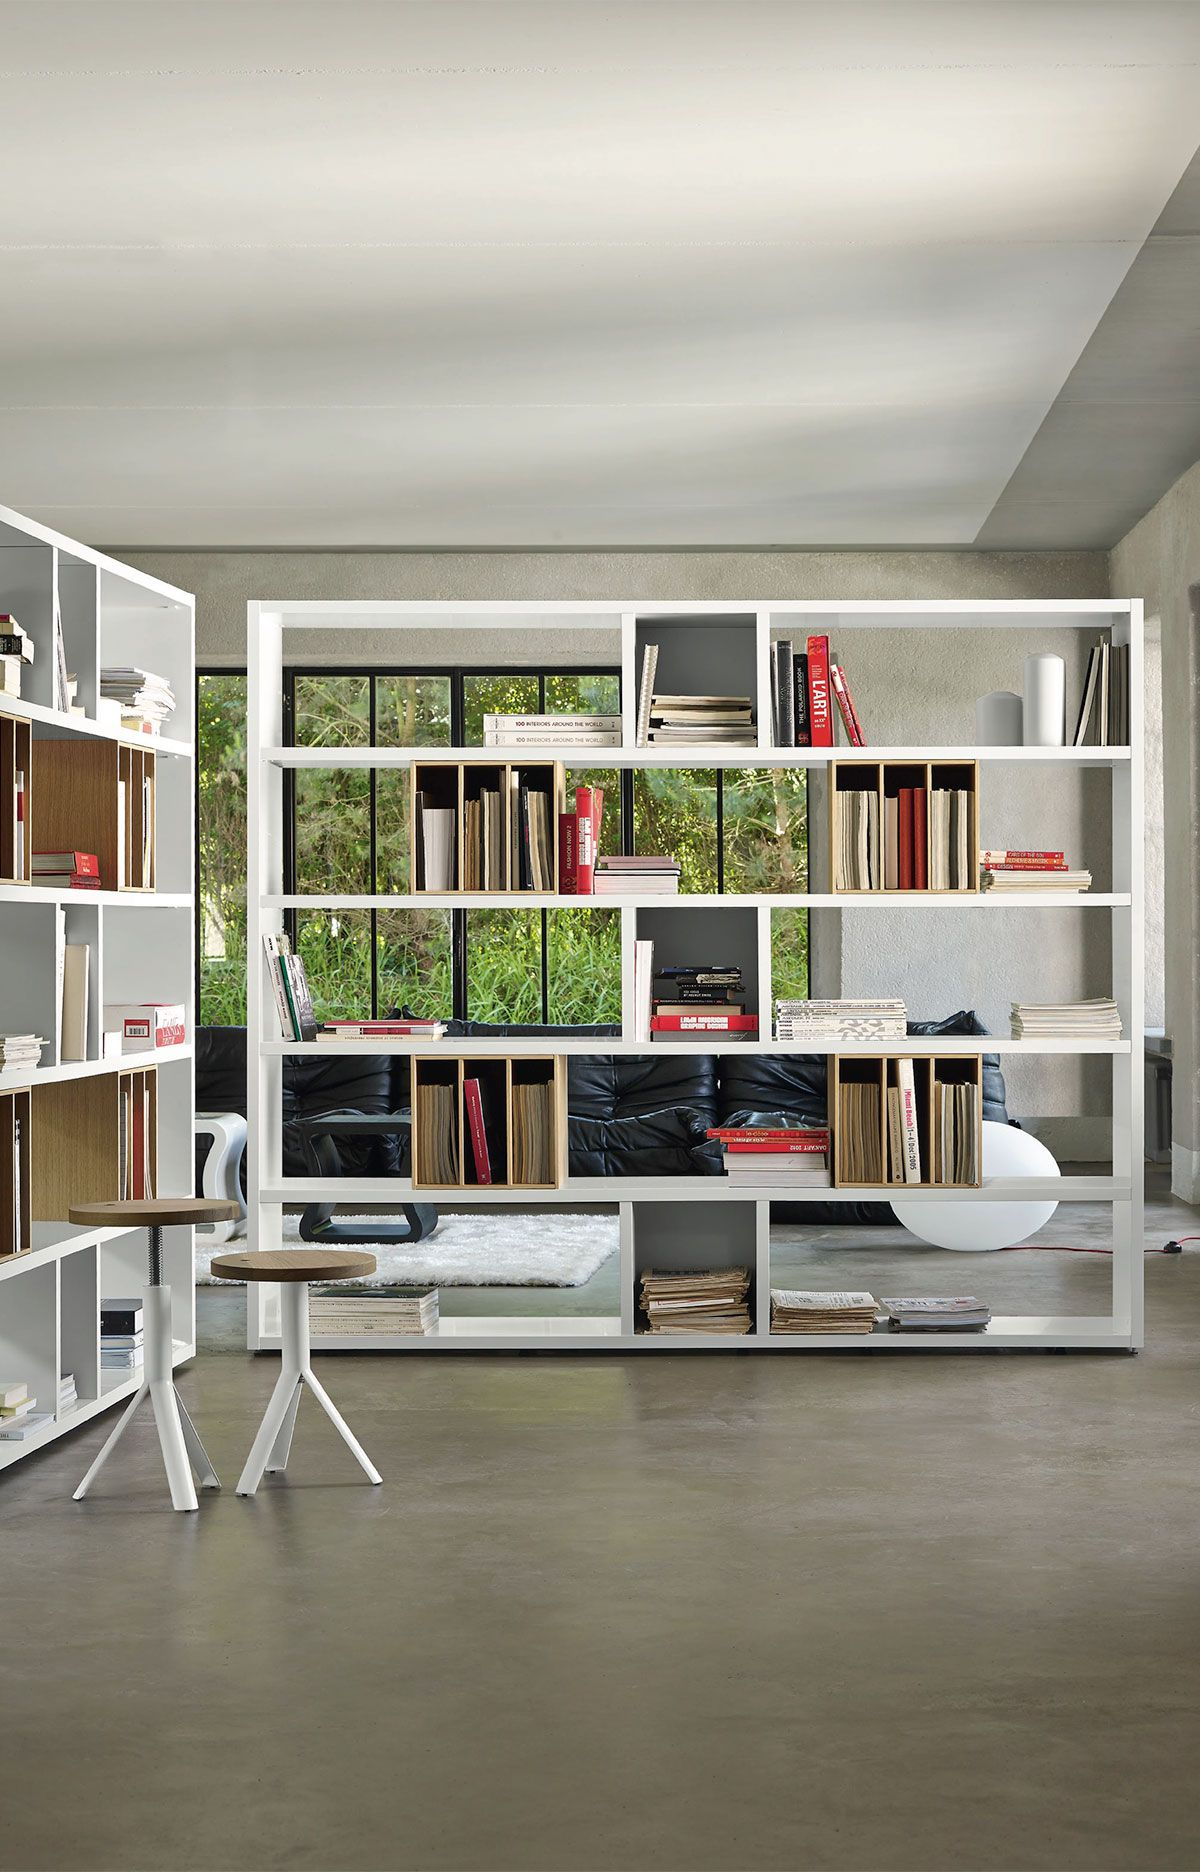 Et Cetera Bookcase Designed By Pagnon Pelhaitre For Ligne Roset